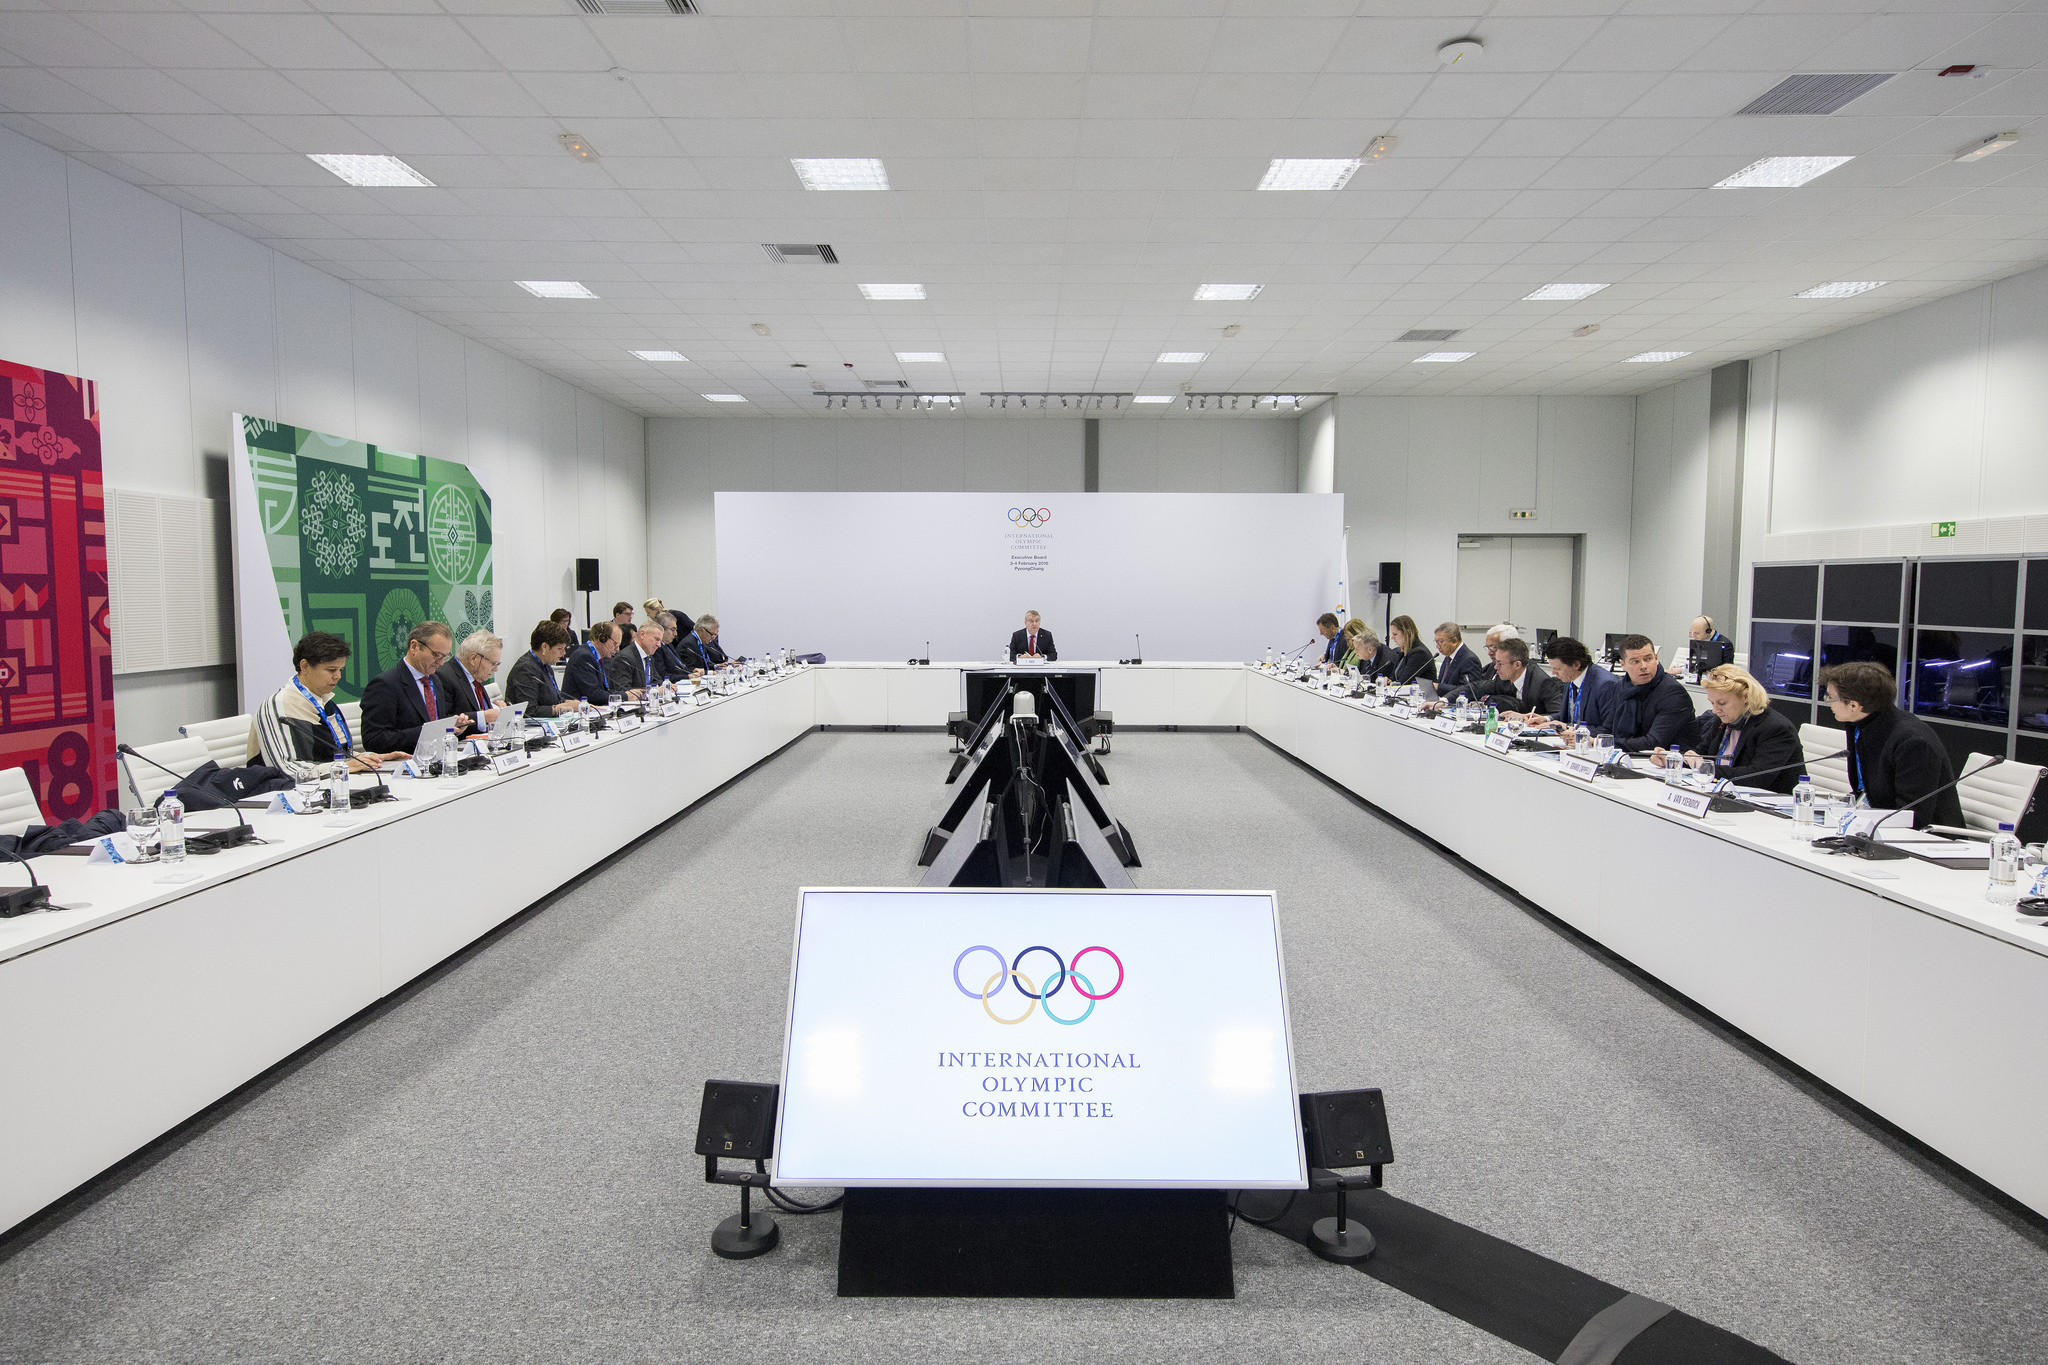 Ioc Meetings Begin As Athletes Arrive At Pyeongchang 2018 First Circuit Board Design Flickr Photo Sharing Thomas Bach Has Also Chaired A Meeting Of The Executive Today